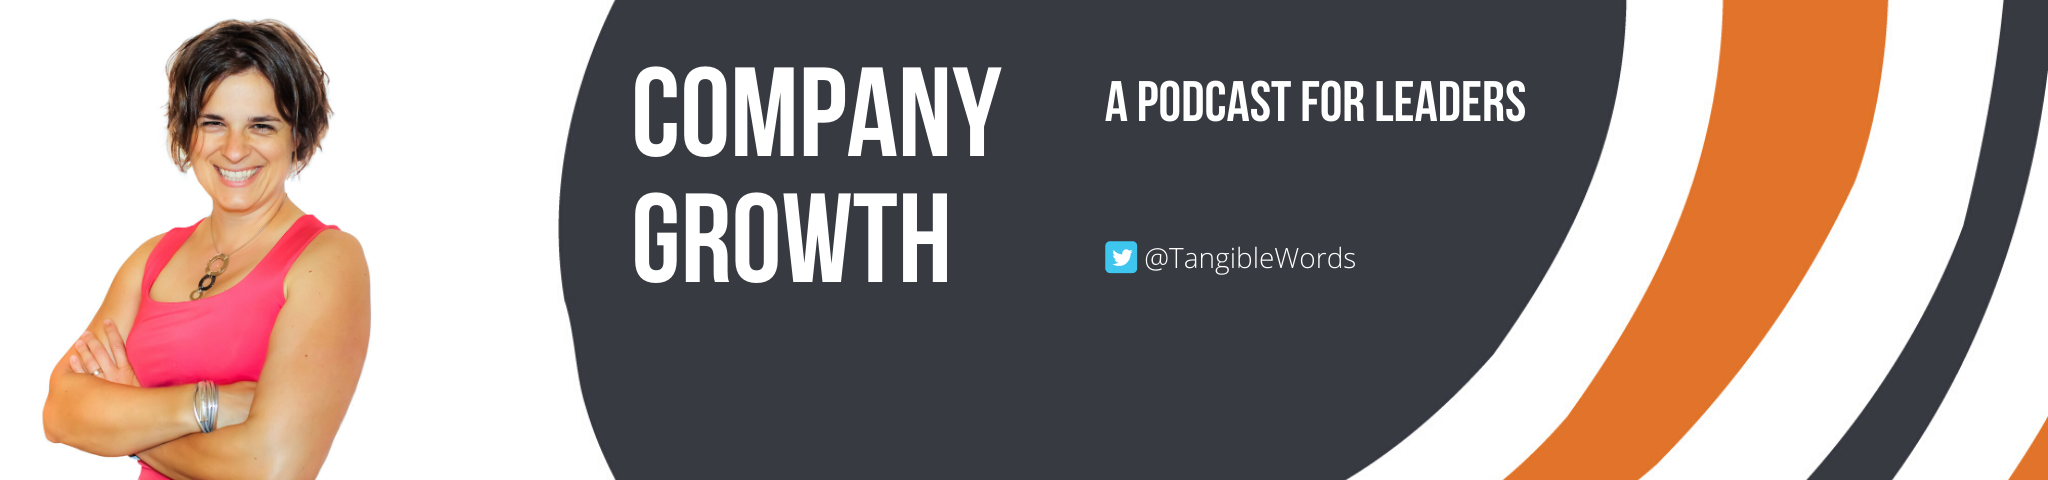 Company Growth Podcast: For Company Leaders